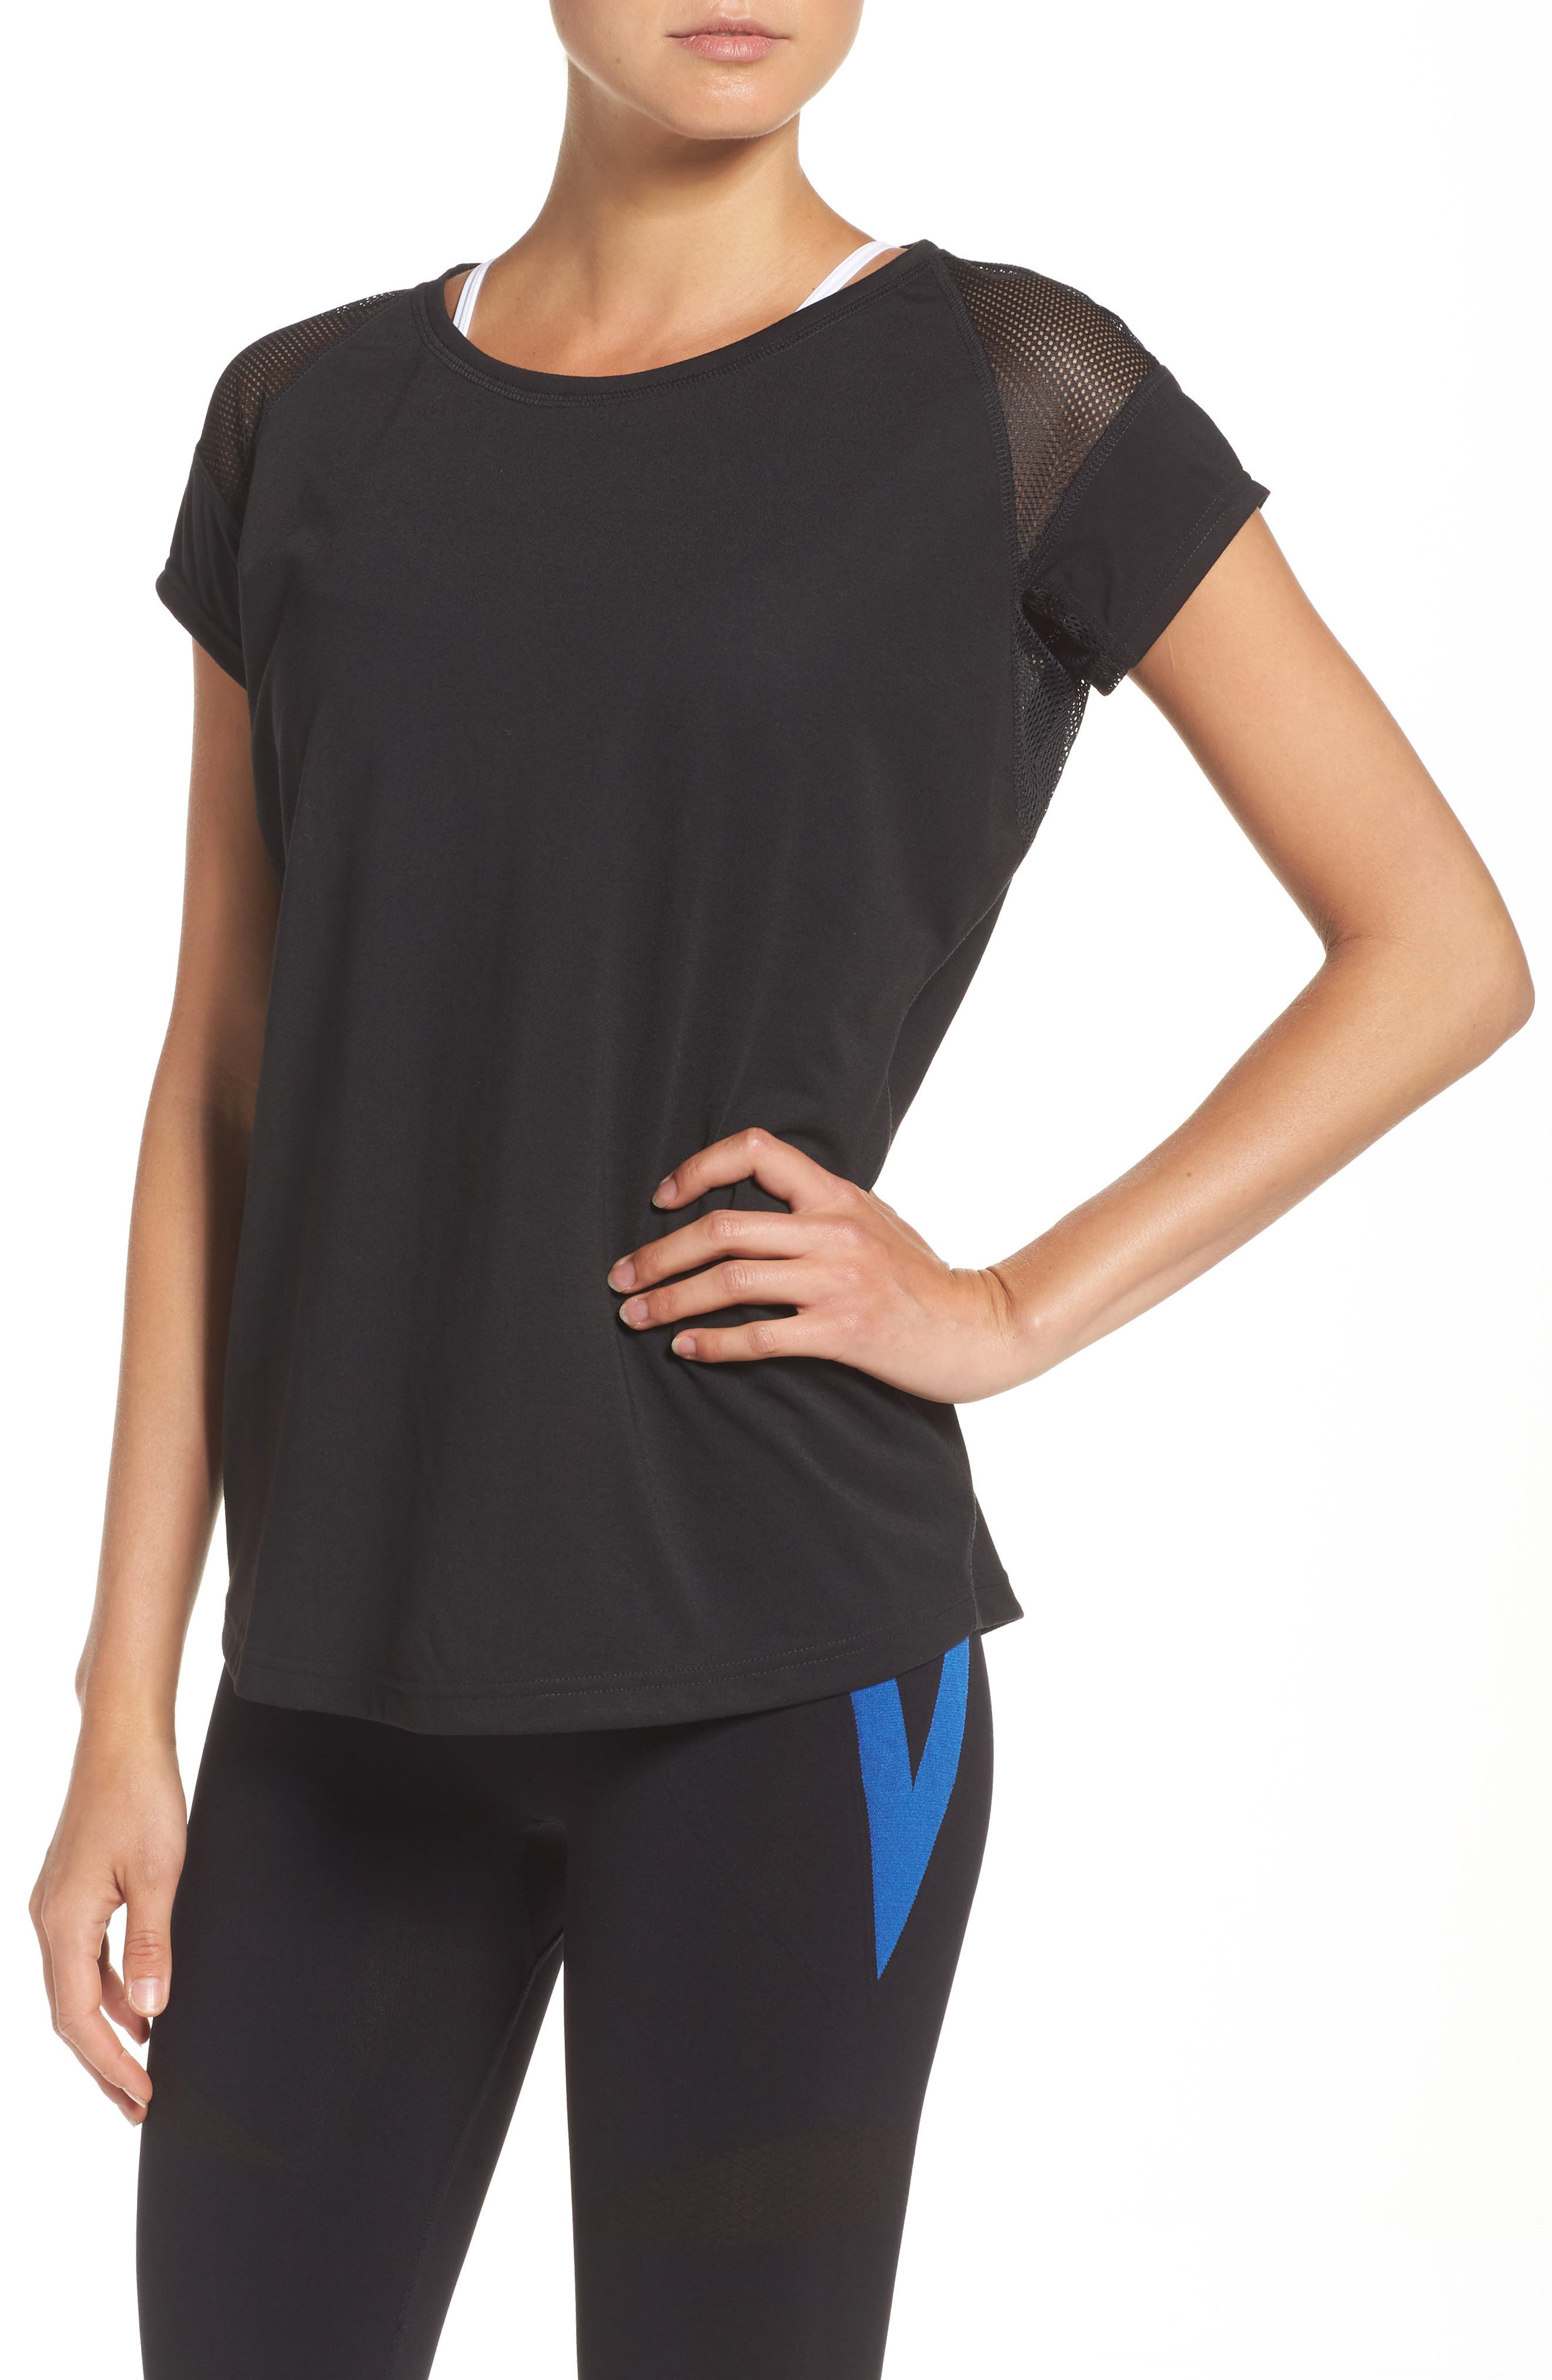 BoomBoom Athletica Sport Perfect Tee